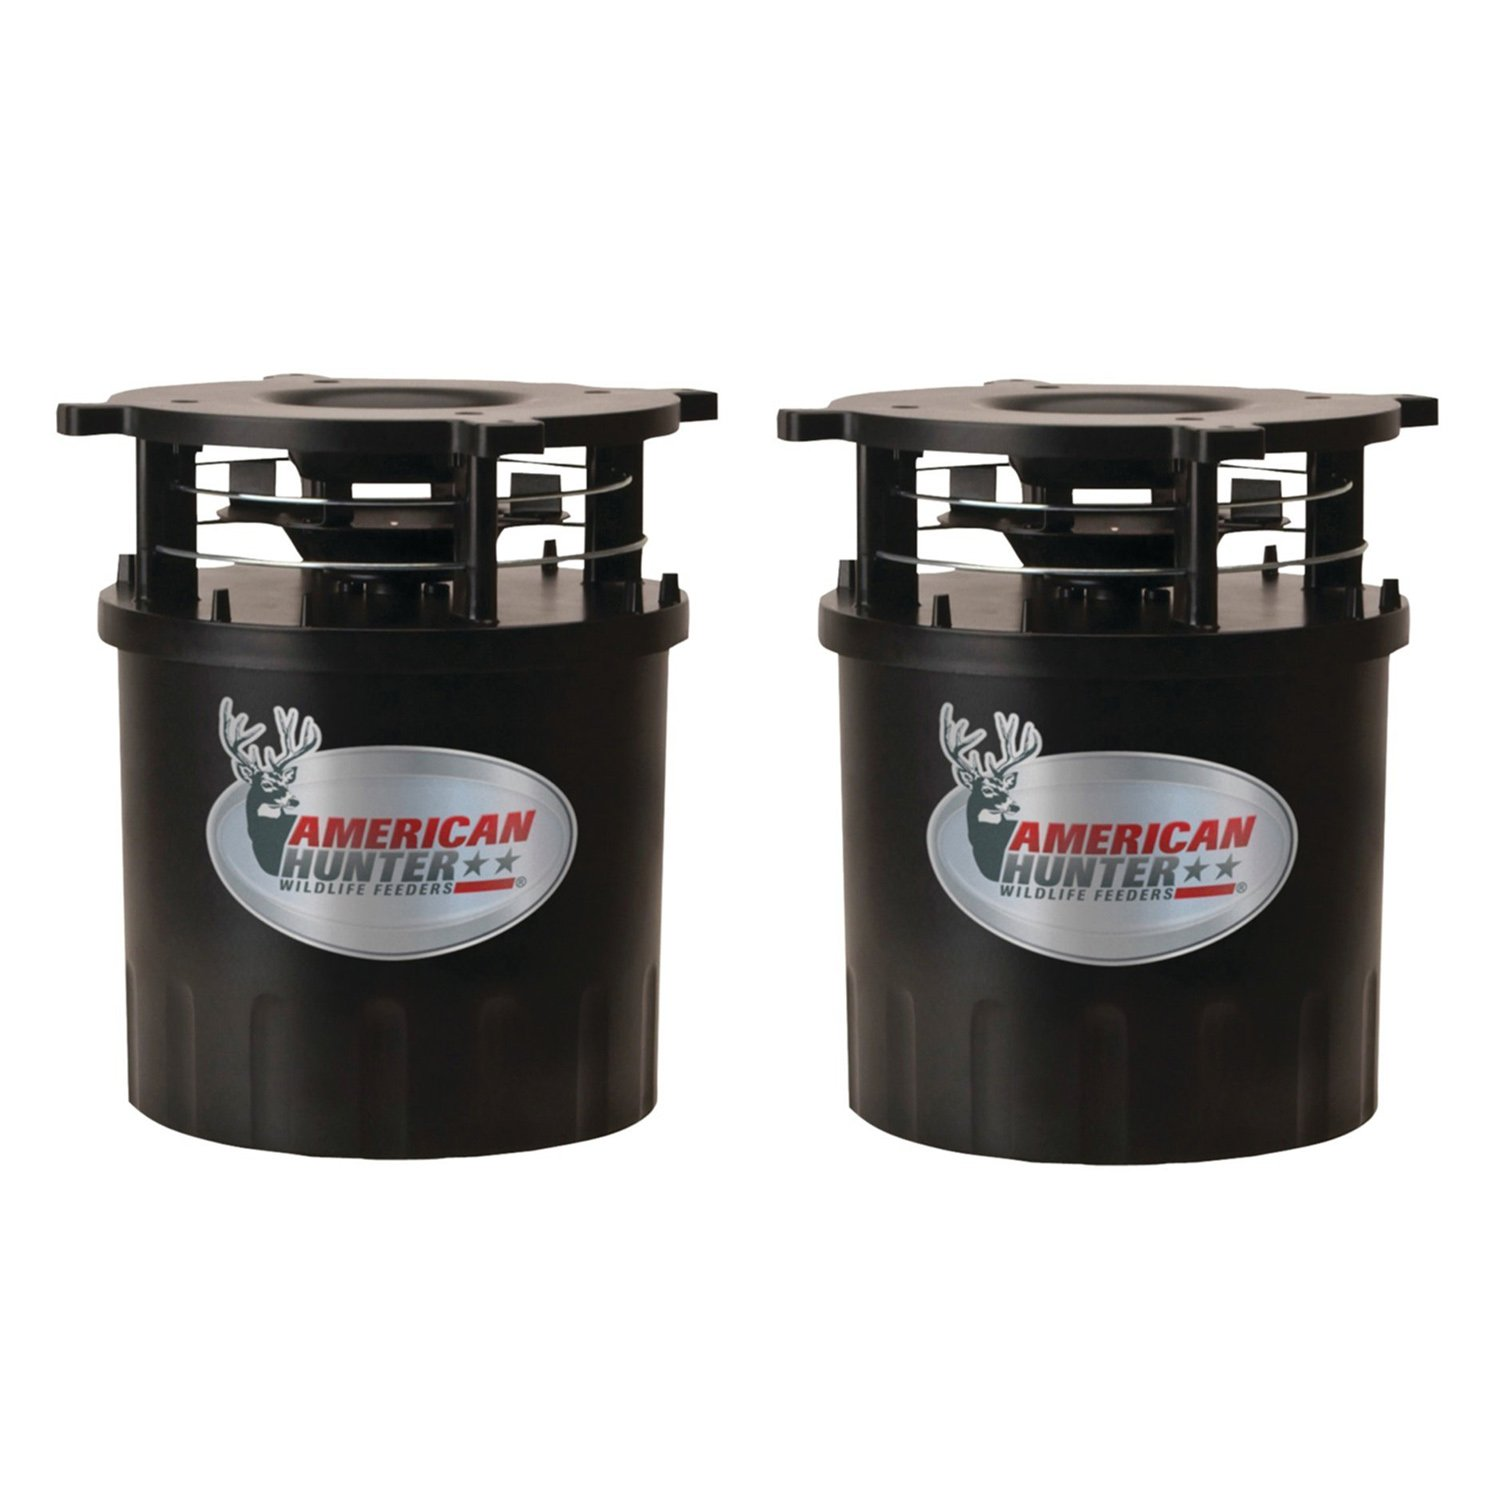 American Hunter R-Pro Wildlife Game Feeder Kit w/ Timer & Varmint Guard (2 Pack)